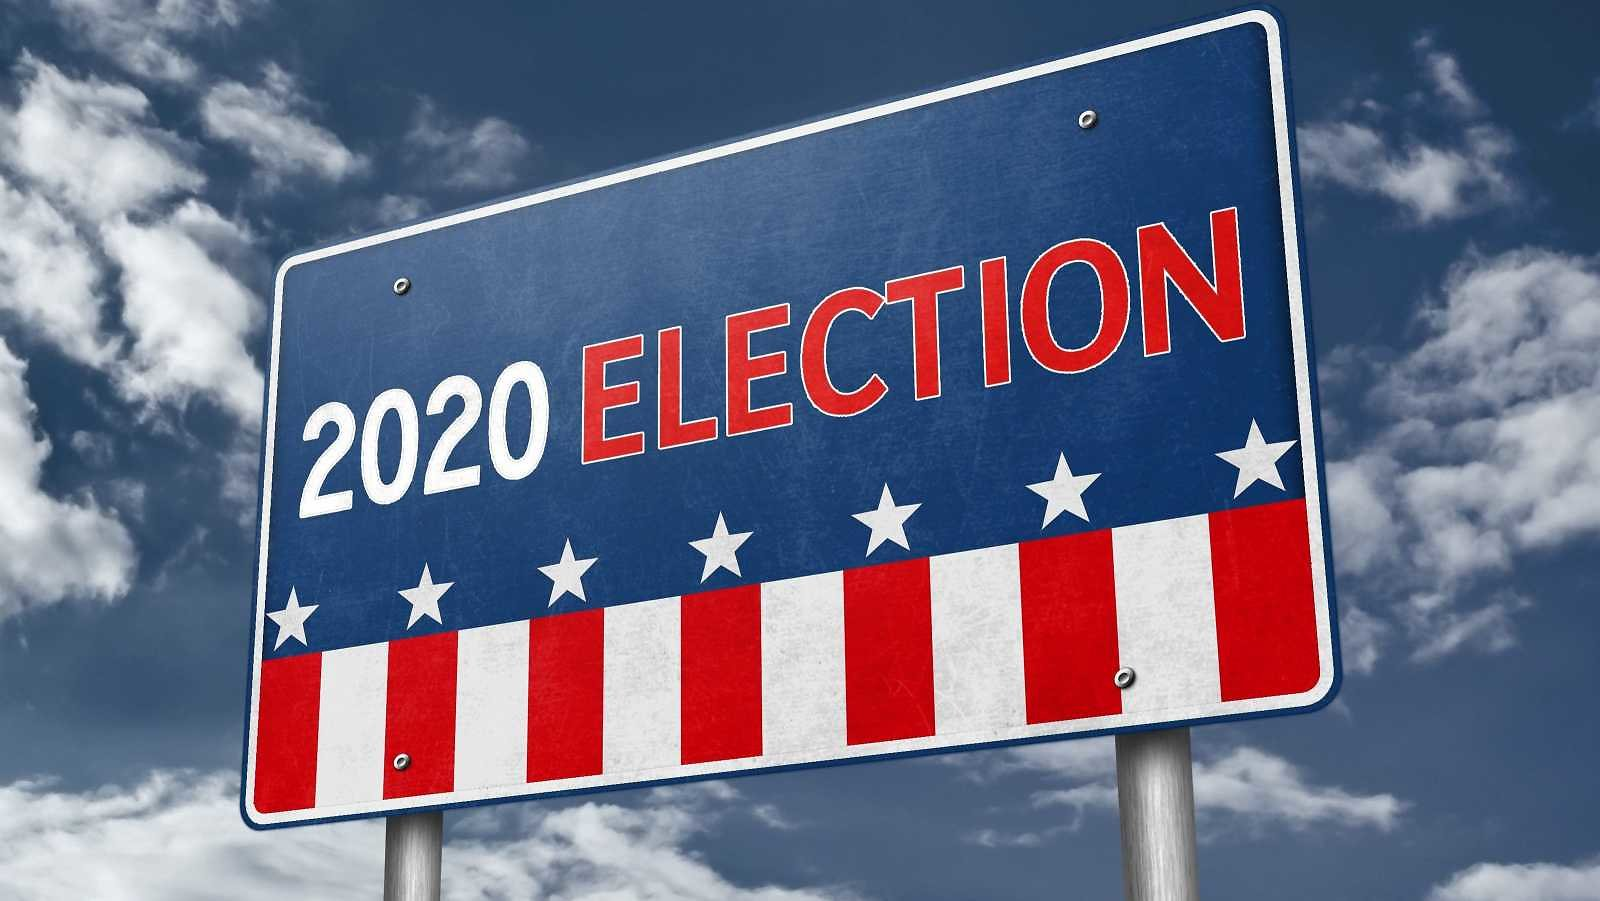 Don't Panic and Diversify: Here Are 4 Key Investing Moves to Make Before The Presidential Election